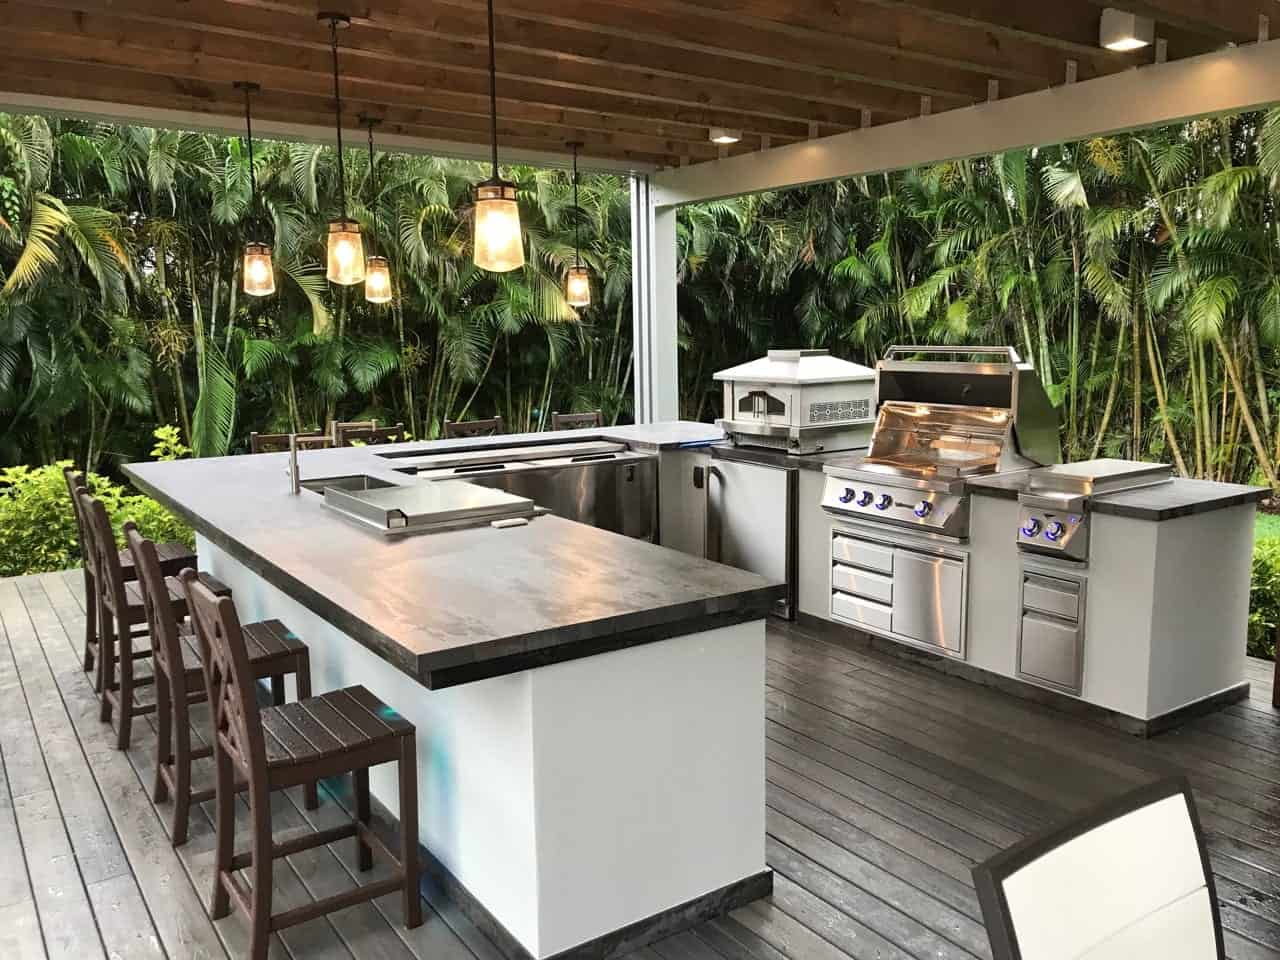 Modern Outdoor Kitchen by Luxapatio 1 min